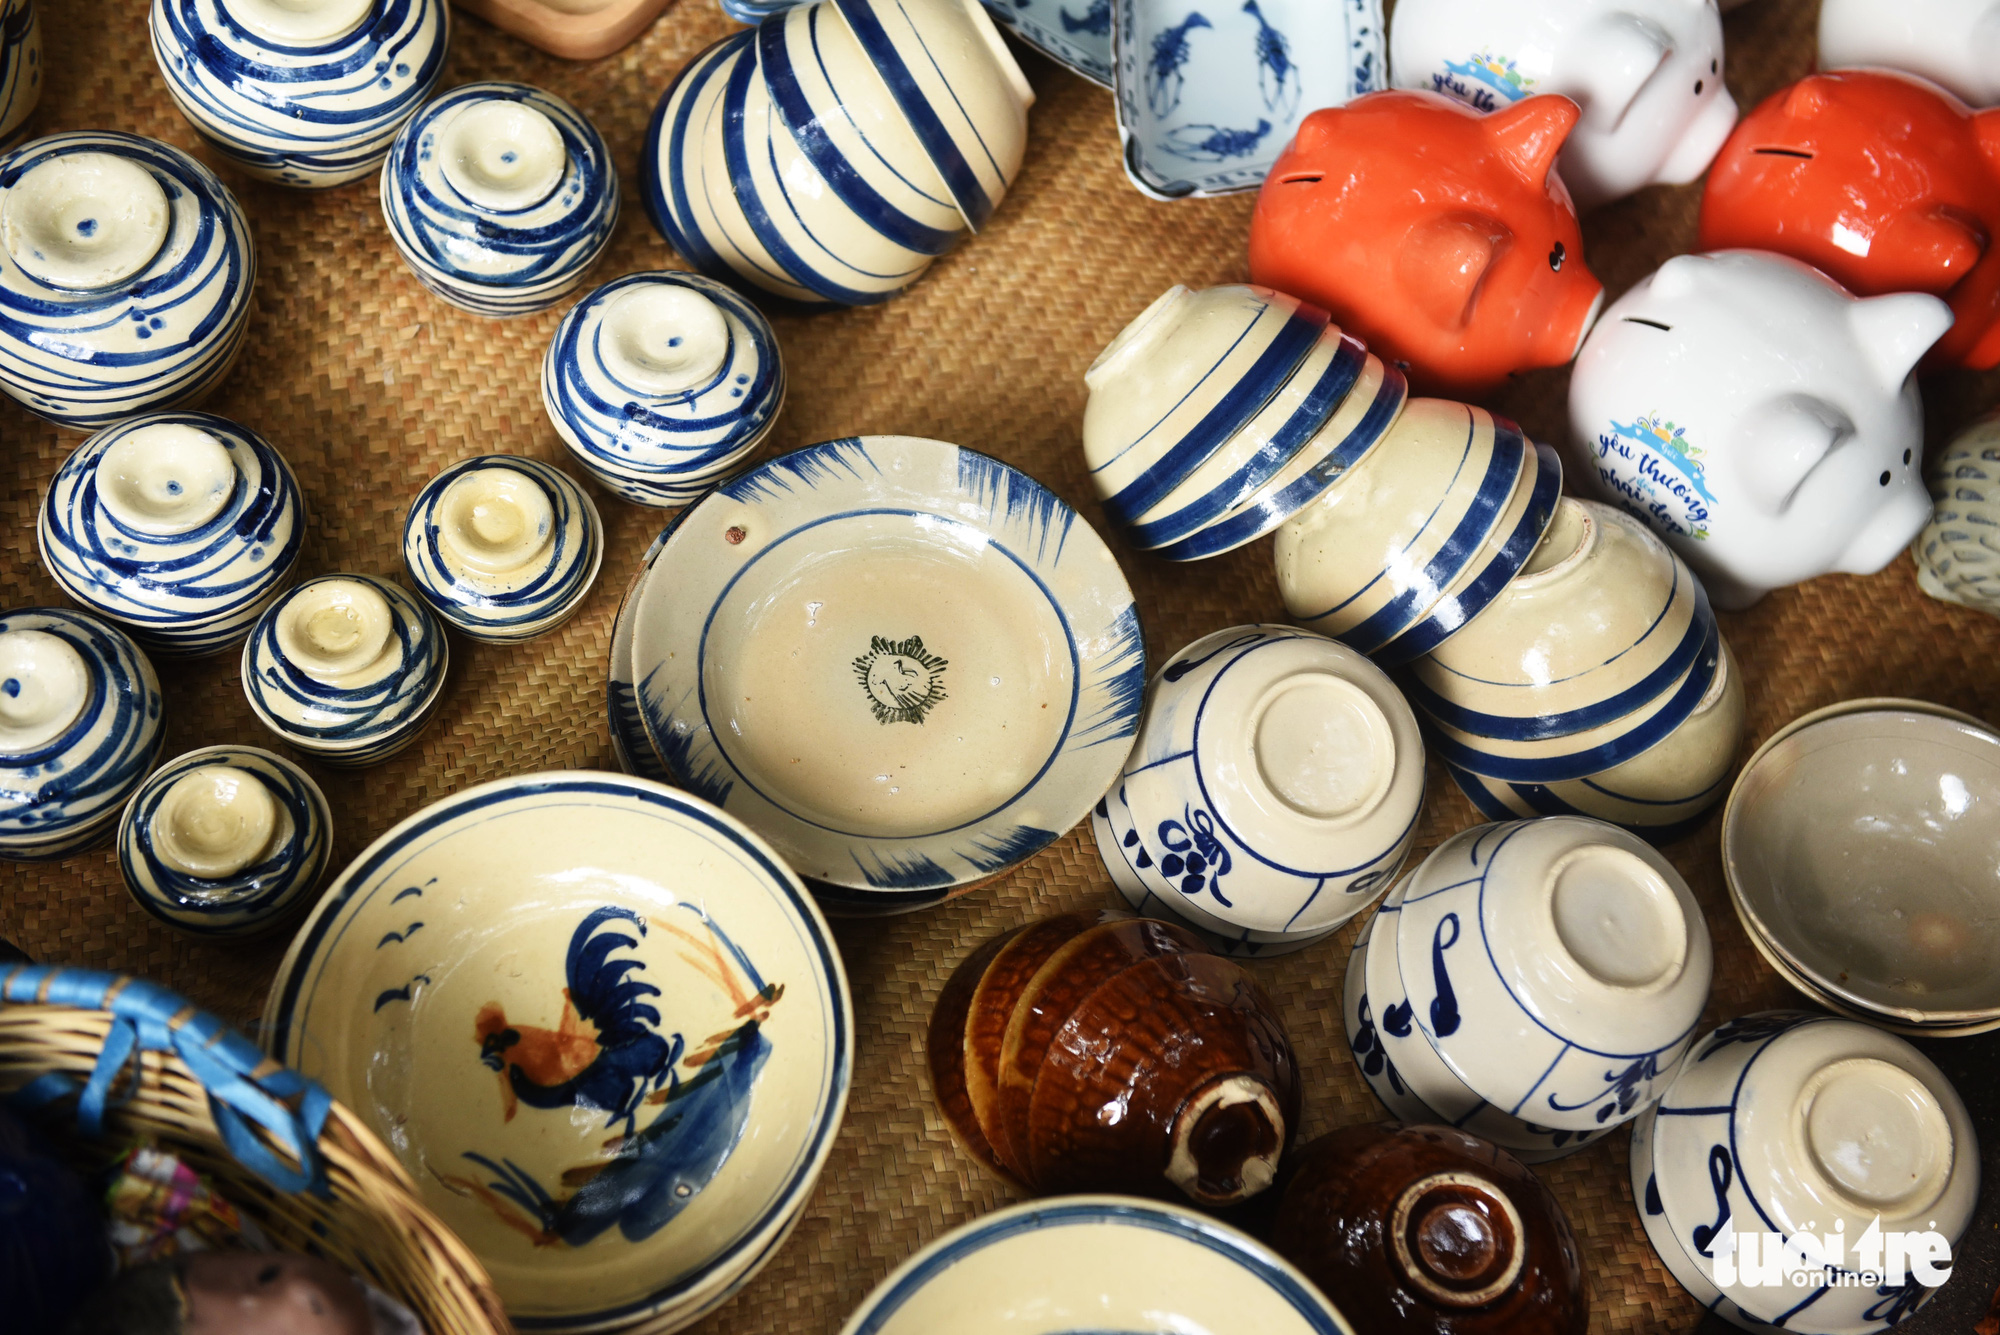 Pottery dinnerware are sold at a 'countryside market' at No. 7 Nguyen Thi Minh Khai Street, District 1, Ho Chi Minh City, Vietnam, May 24, 2020. Photo: Duyen Phan / Tuoi Tre